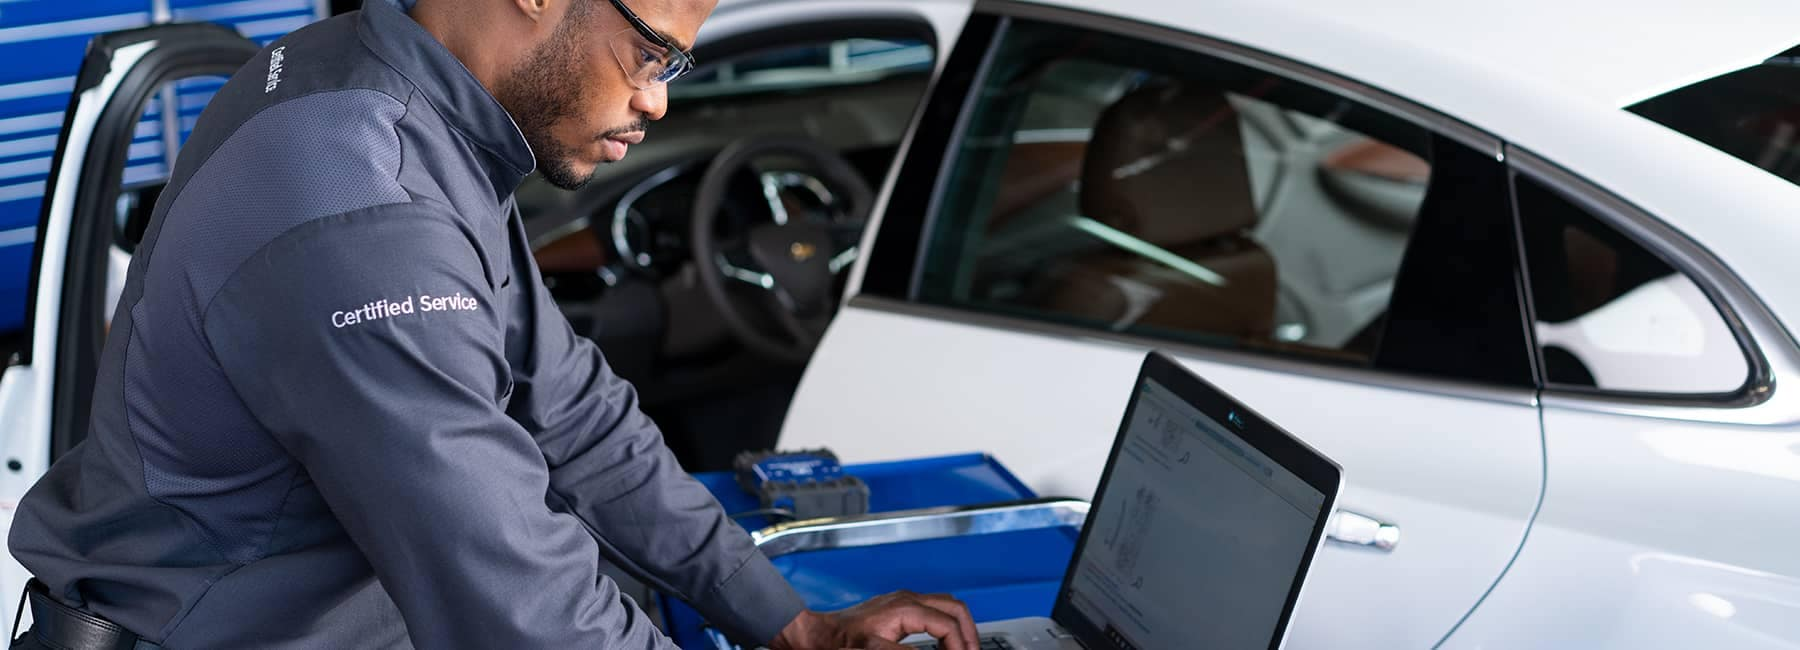 Chevrolet service technician looking at laptop